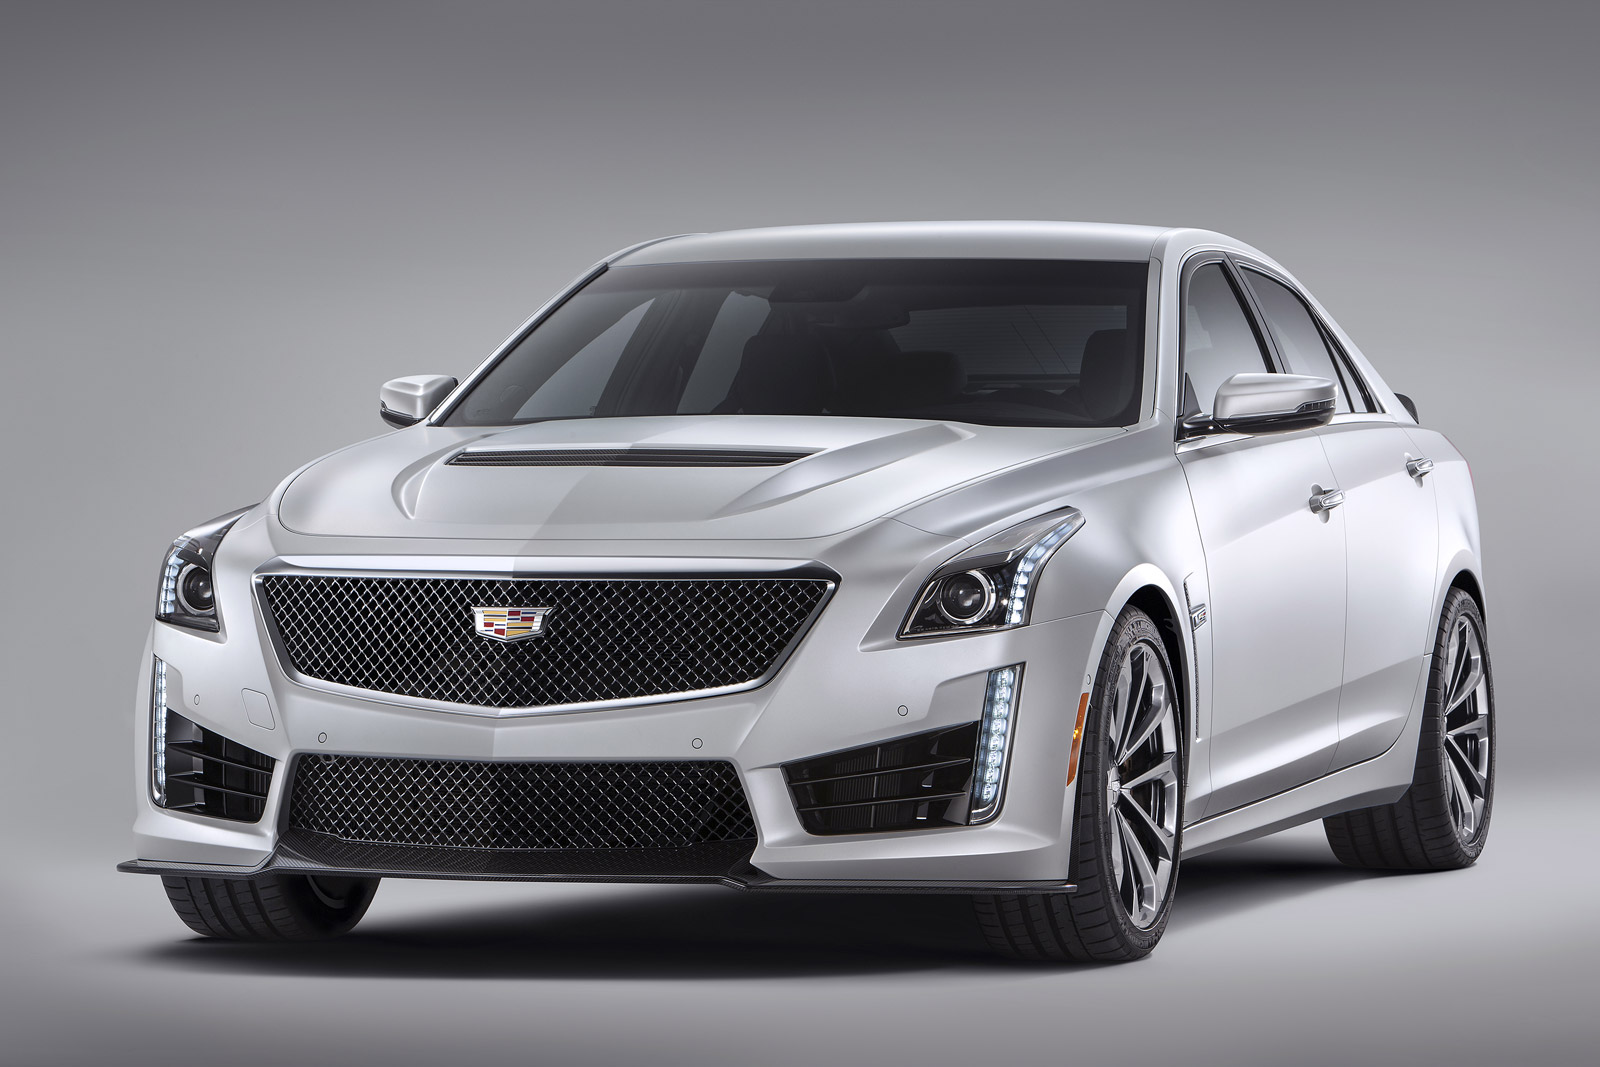 2015 Chrysler 300, 2015 Dodge Charger, 2016 Cadillac CTS-V: What's New @  The Car Connection